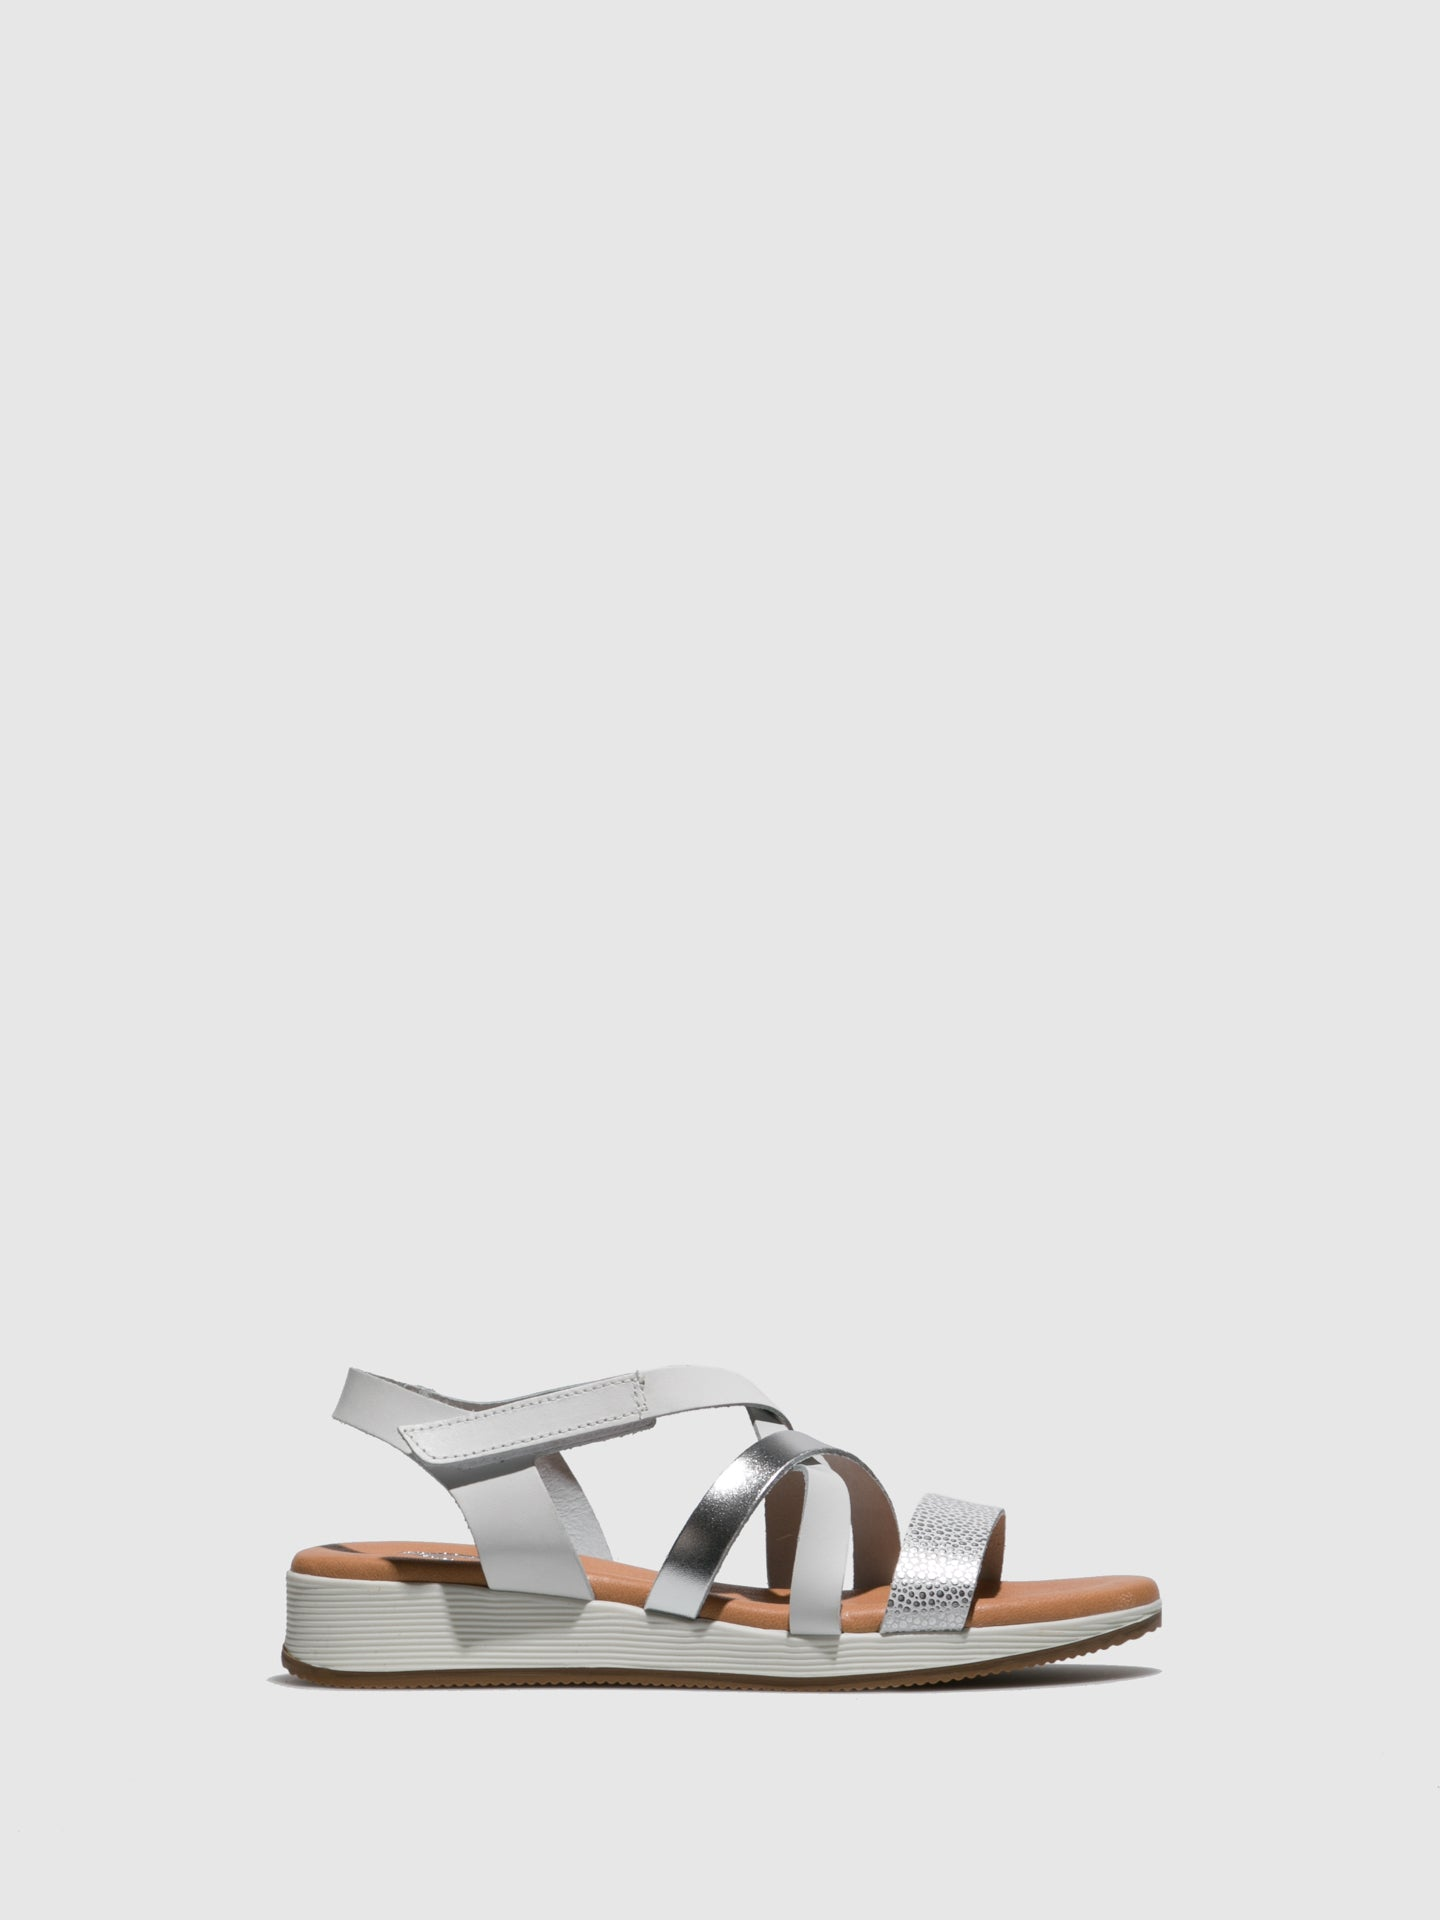 Marila Shoes Silver White Velcro Sandals